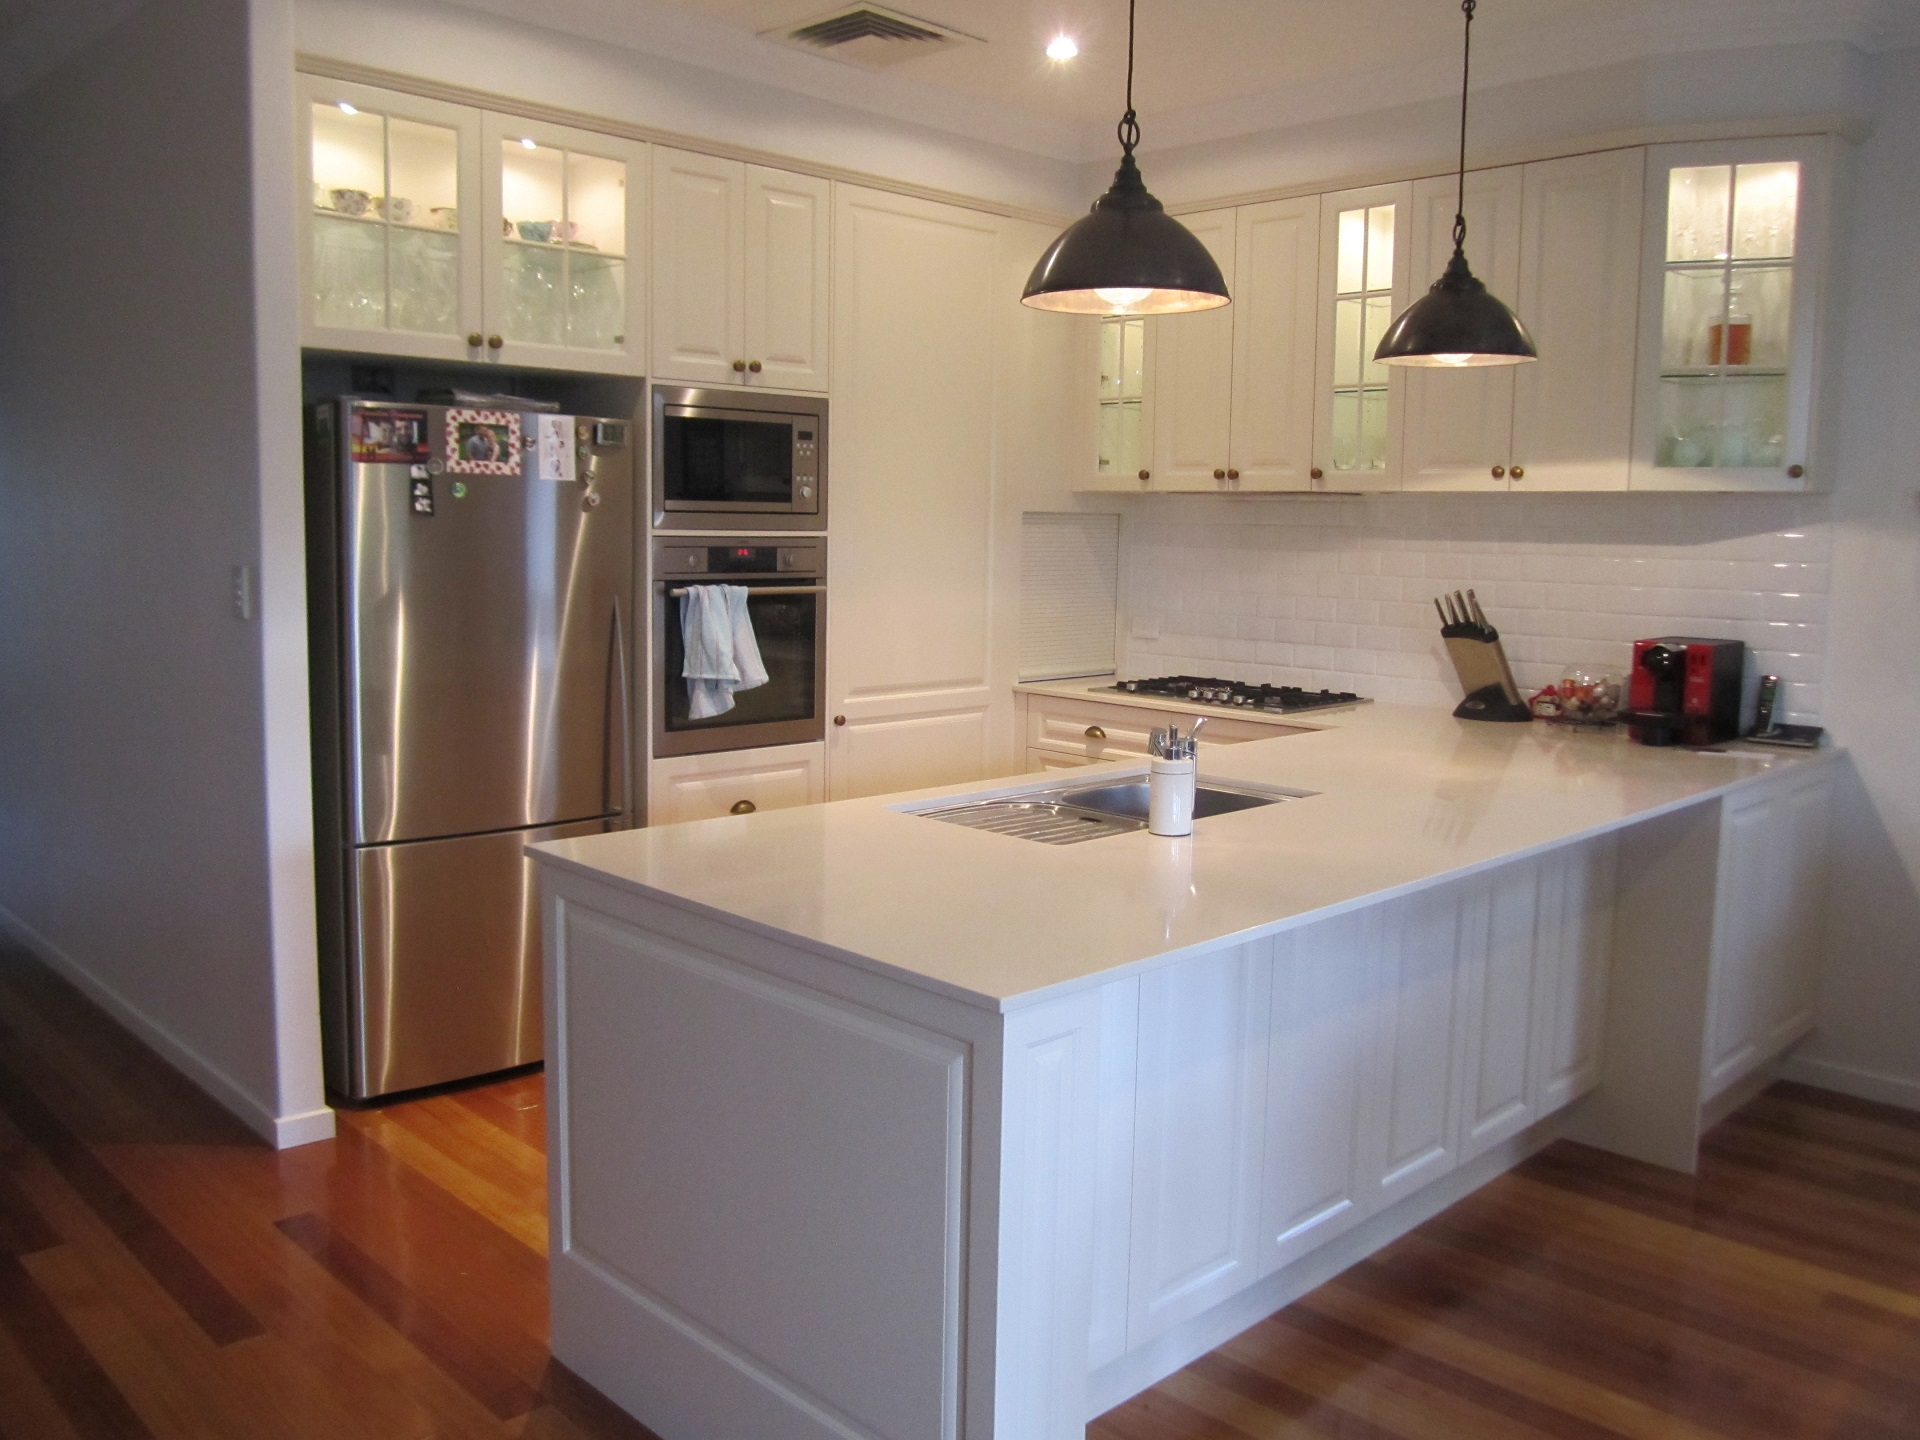 Kitchen Footprints, Layouts And Design